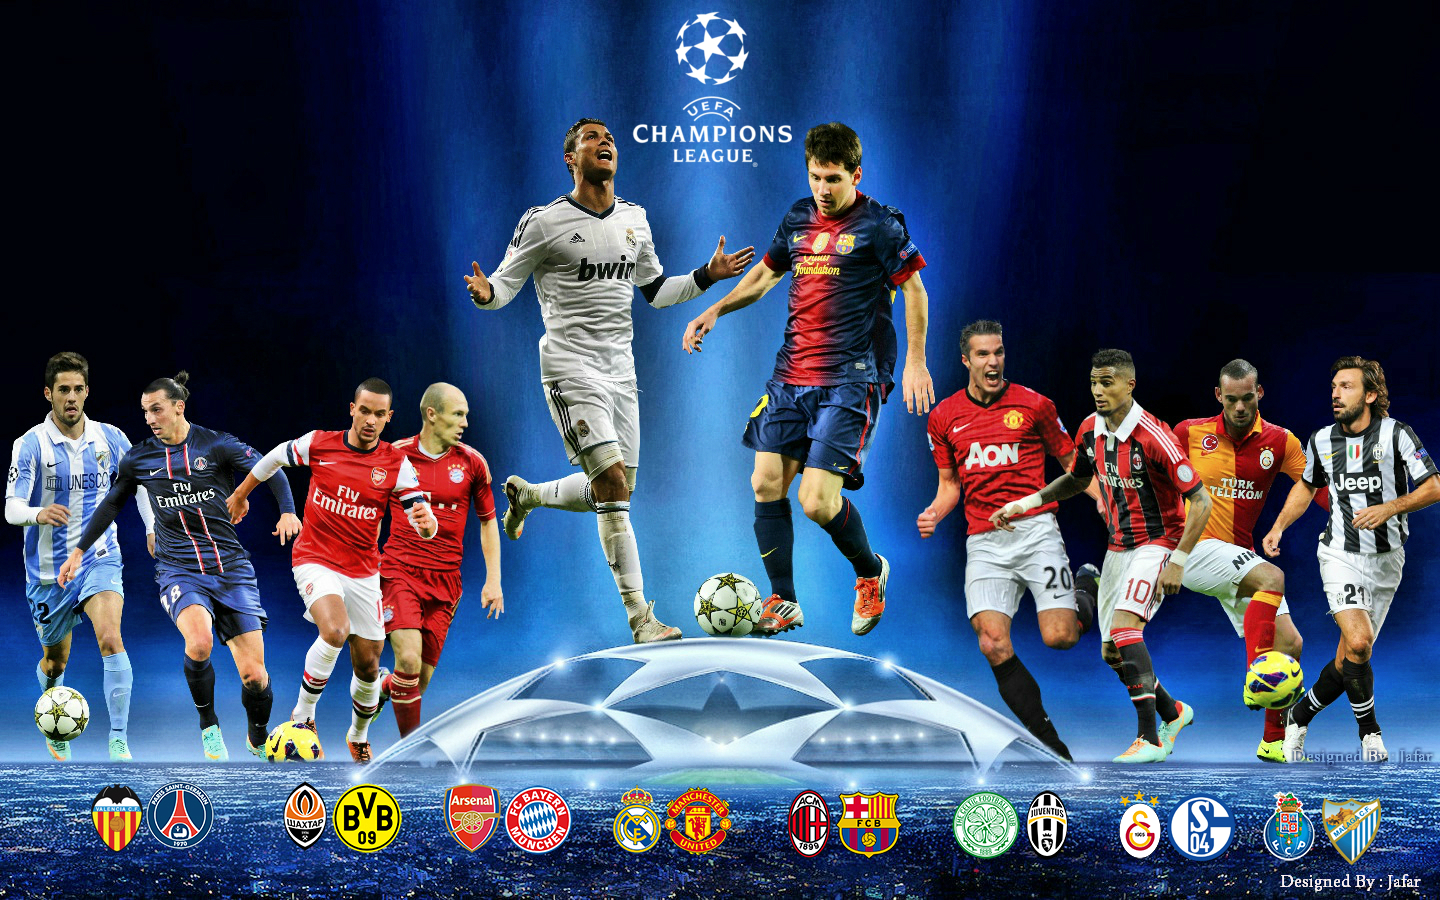 Champions: Champions League Wallpapers